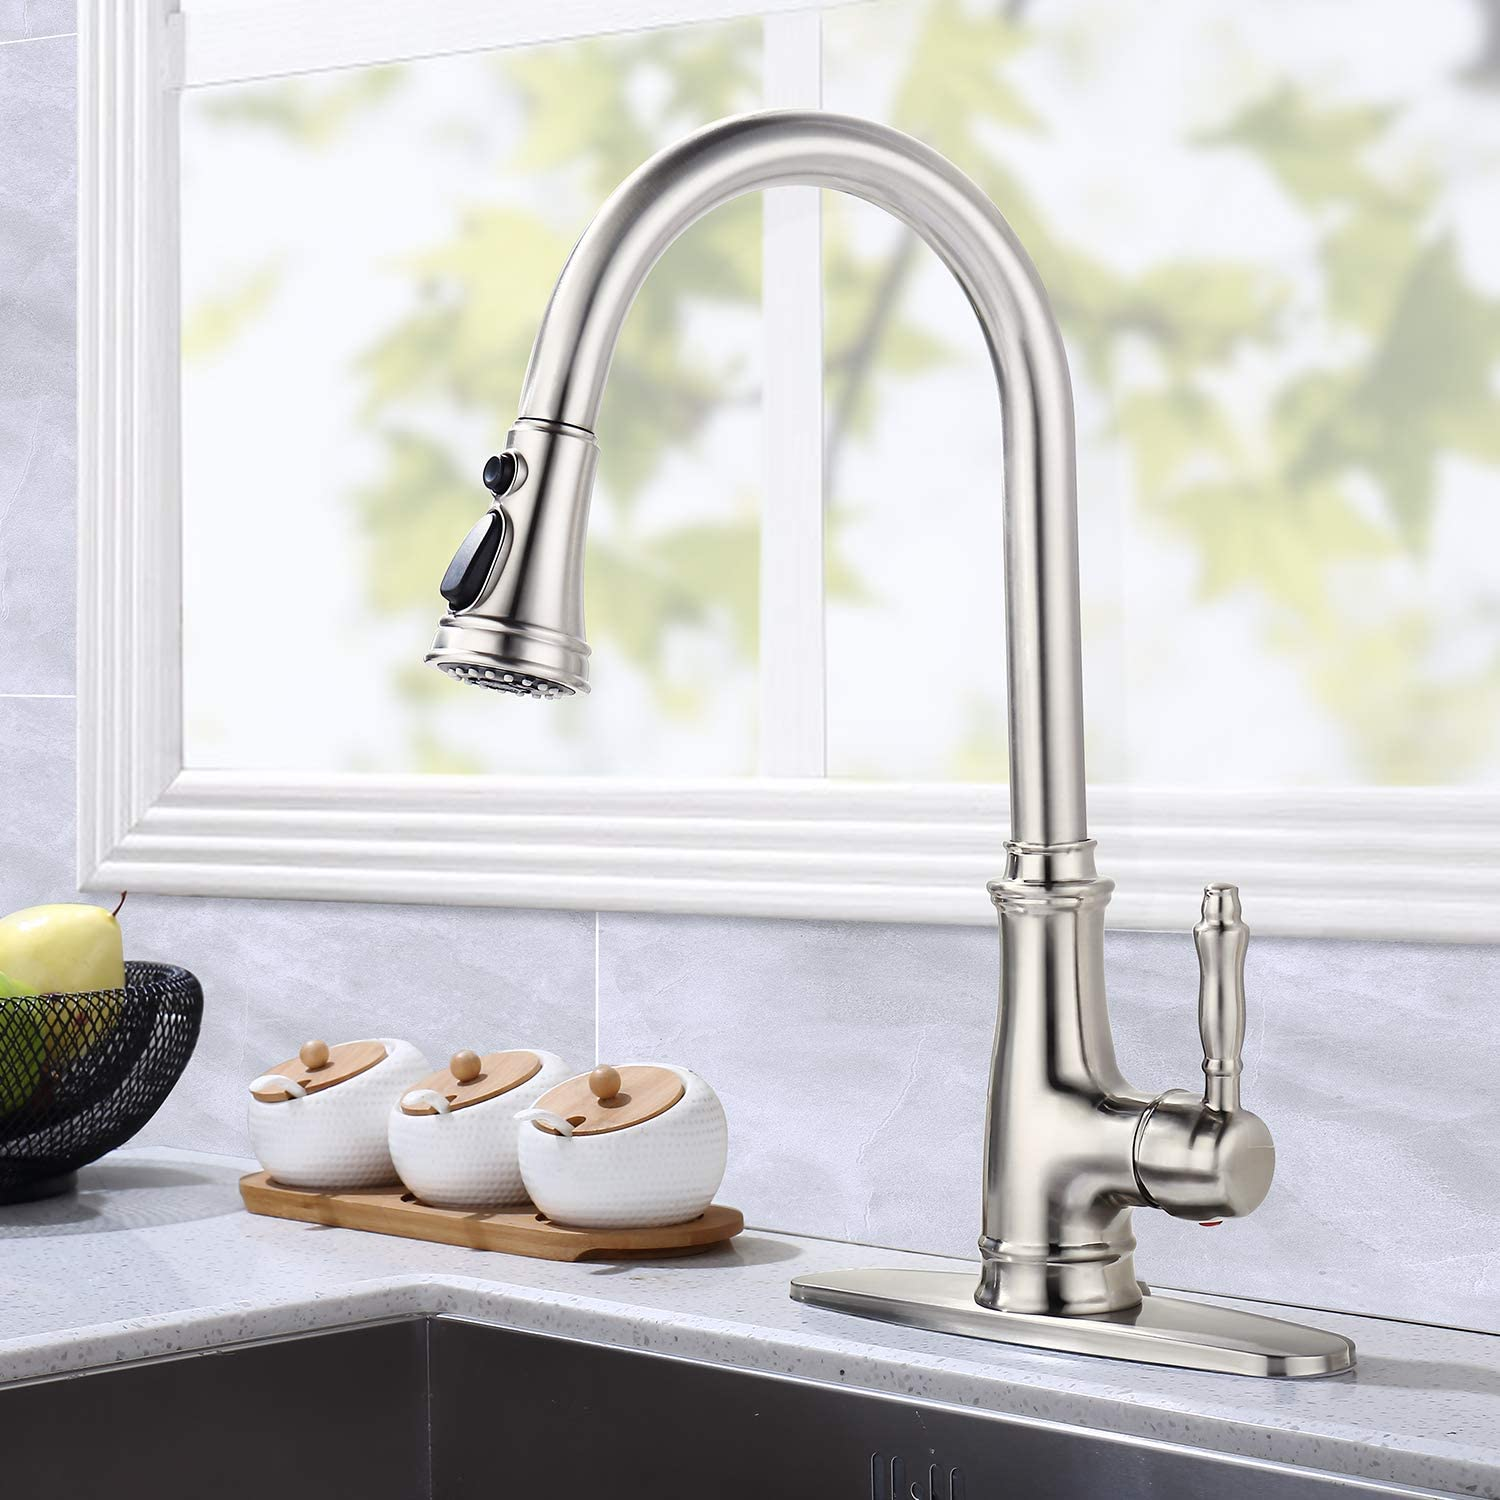 XFHome Lead- Free Single Handle Stainless Steel Brushed Nickel Pull Out Kitchen Faucet, Kitchen Sink Faucet with Deck Plate